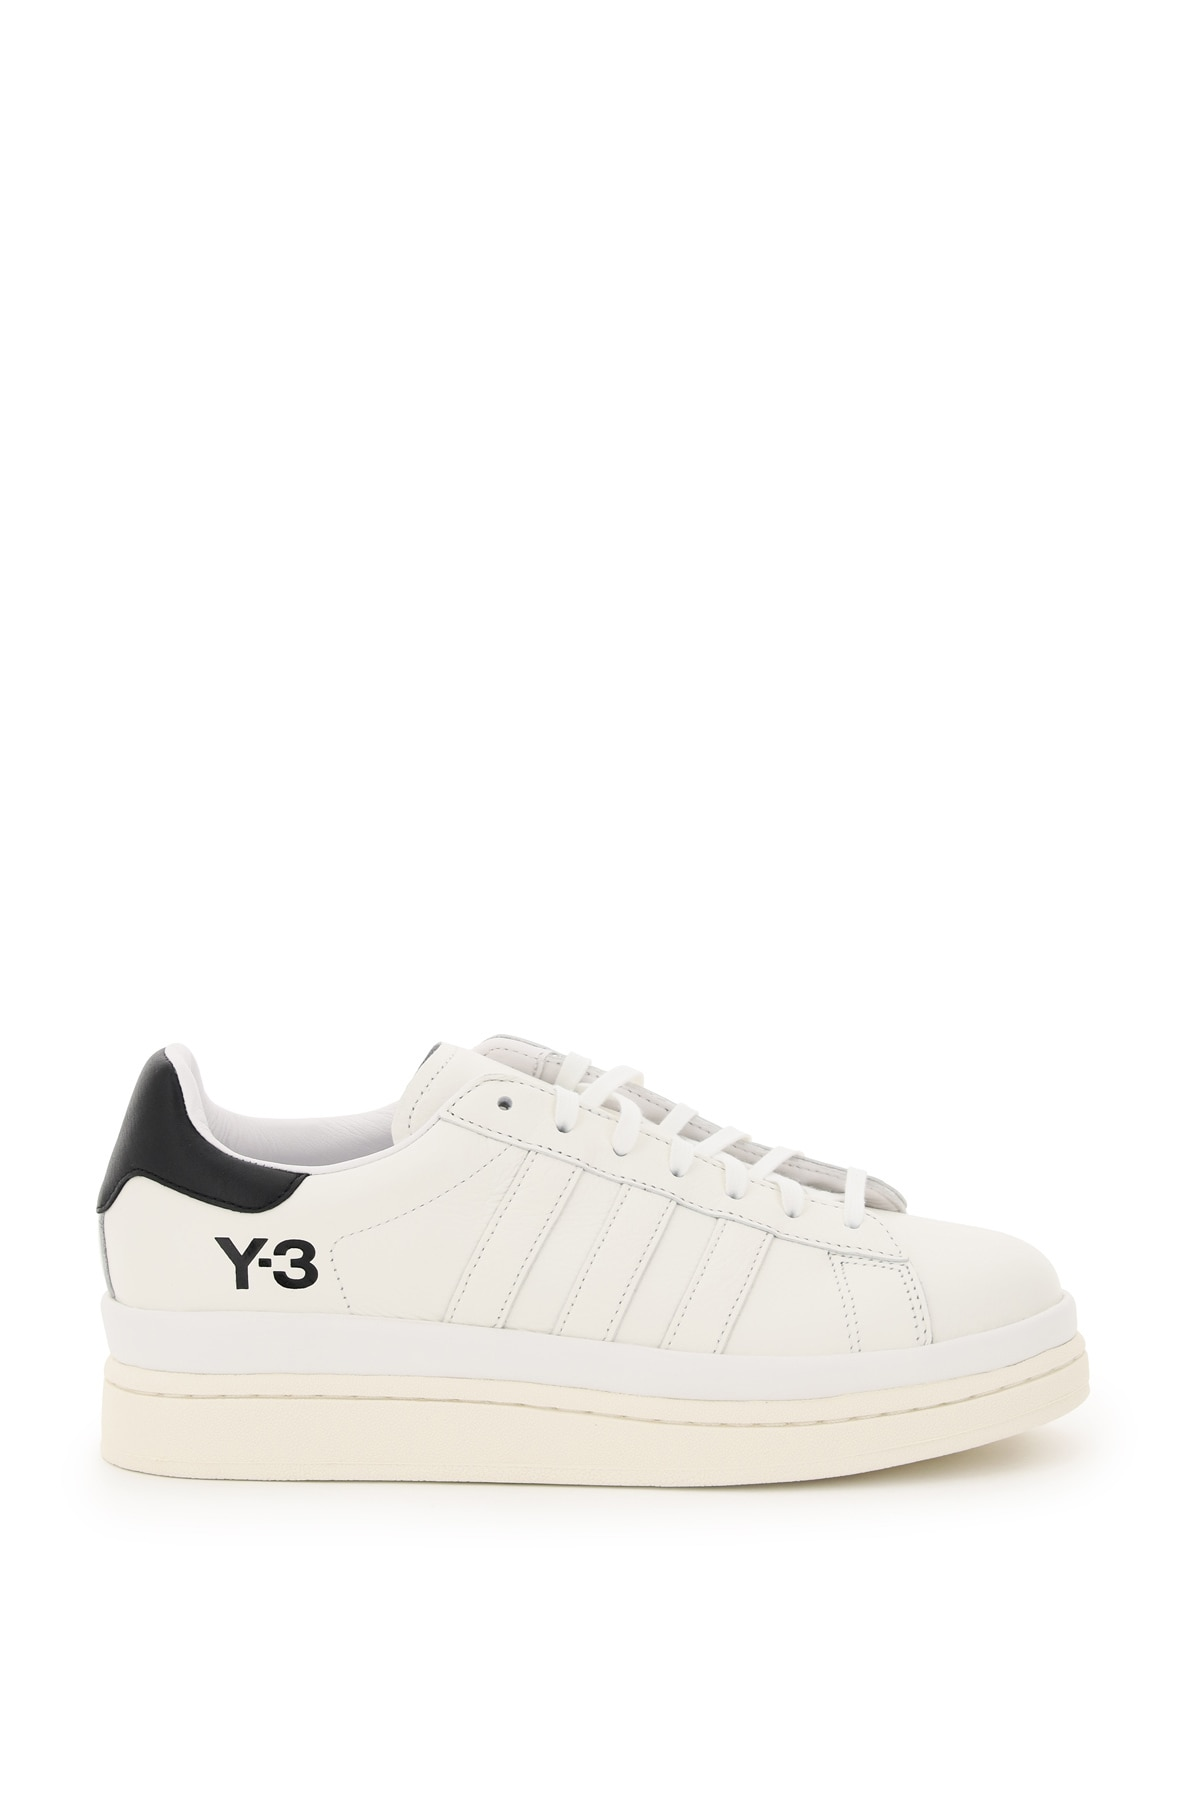 Y-3 Leathers HICHO SNEAKERS